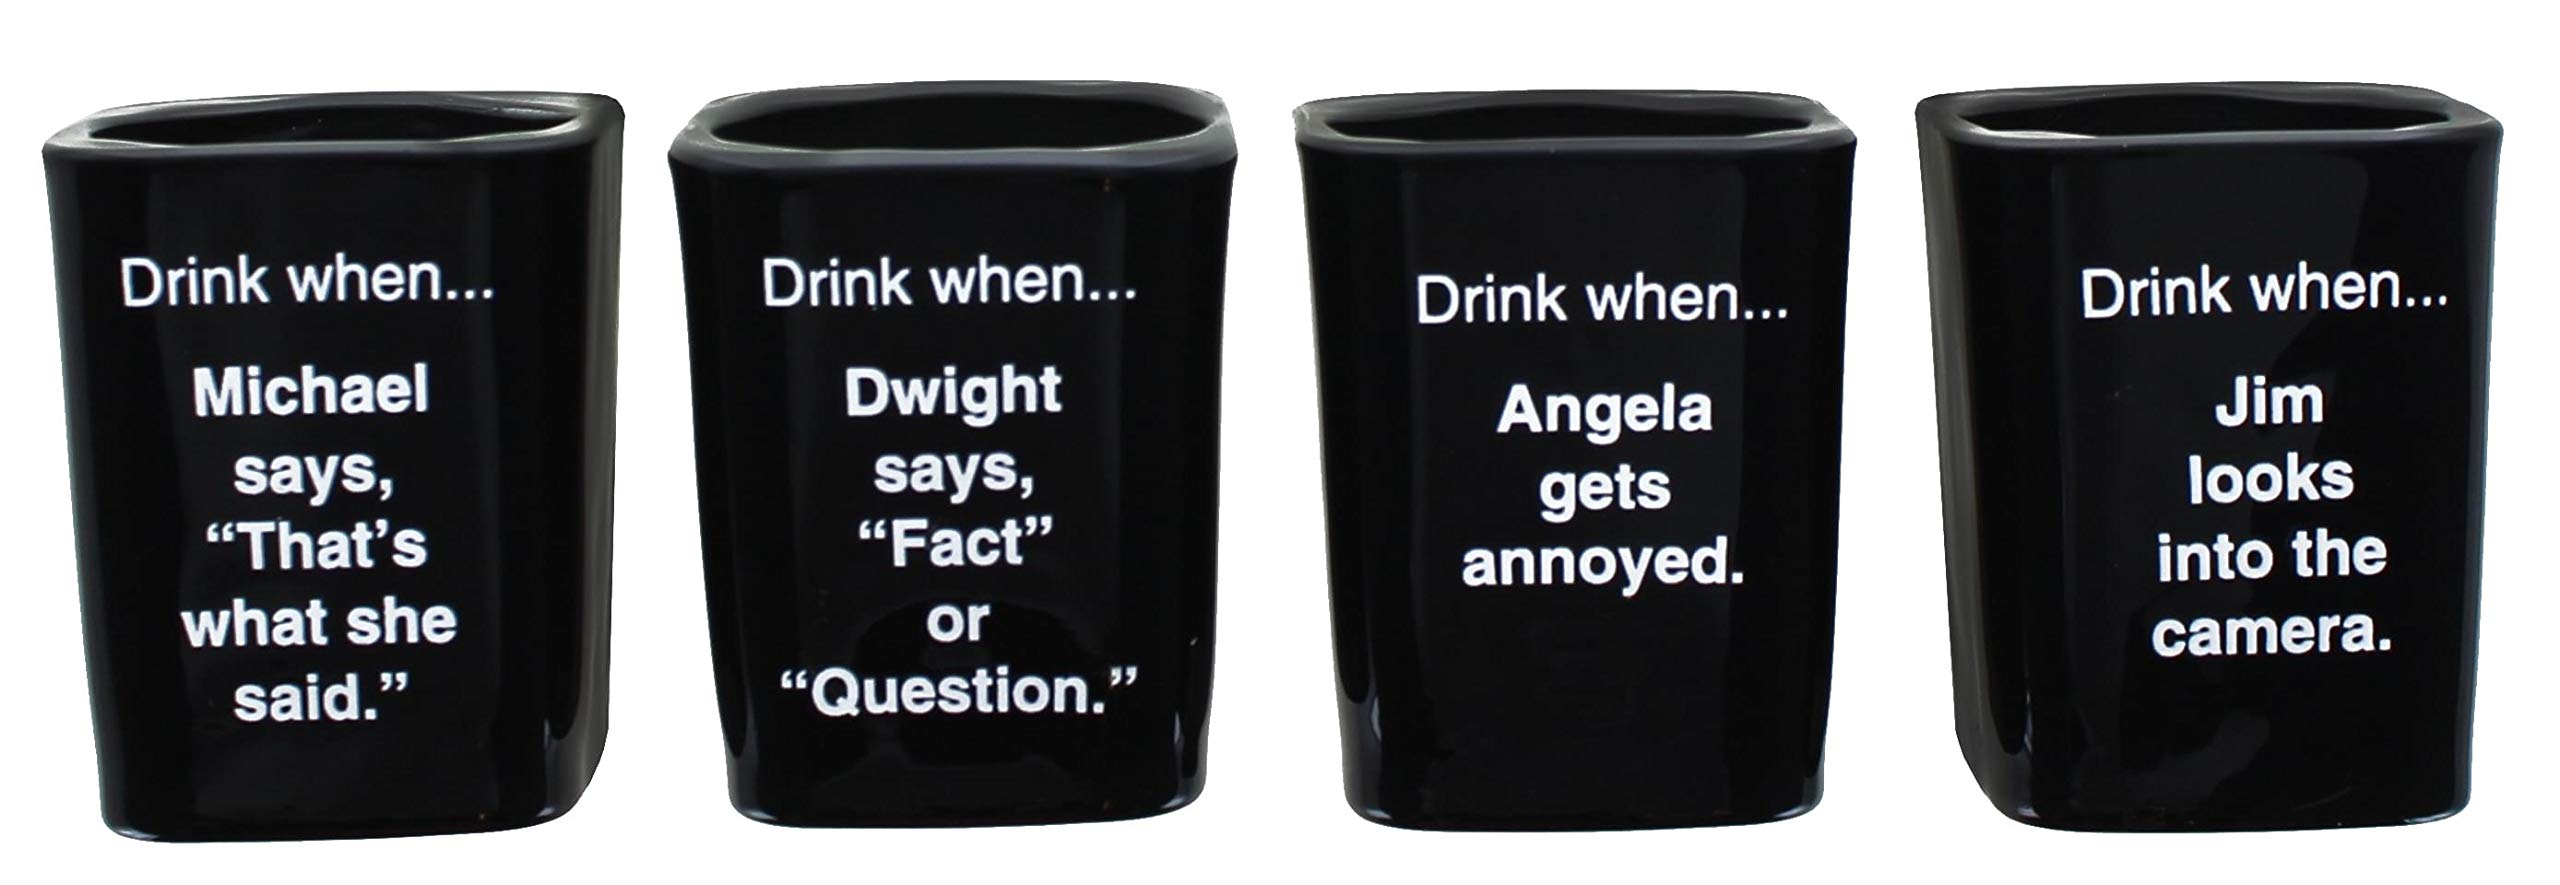 The Office Collectible Character Shot Glass Drinking Game | Features Michael, Jim, Dwight, & Angela | 2 Ounce Glasses…